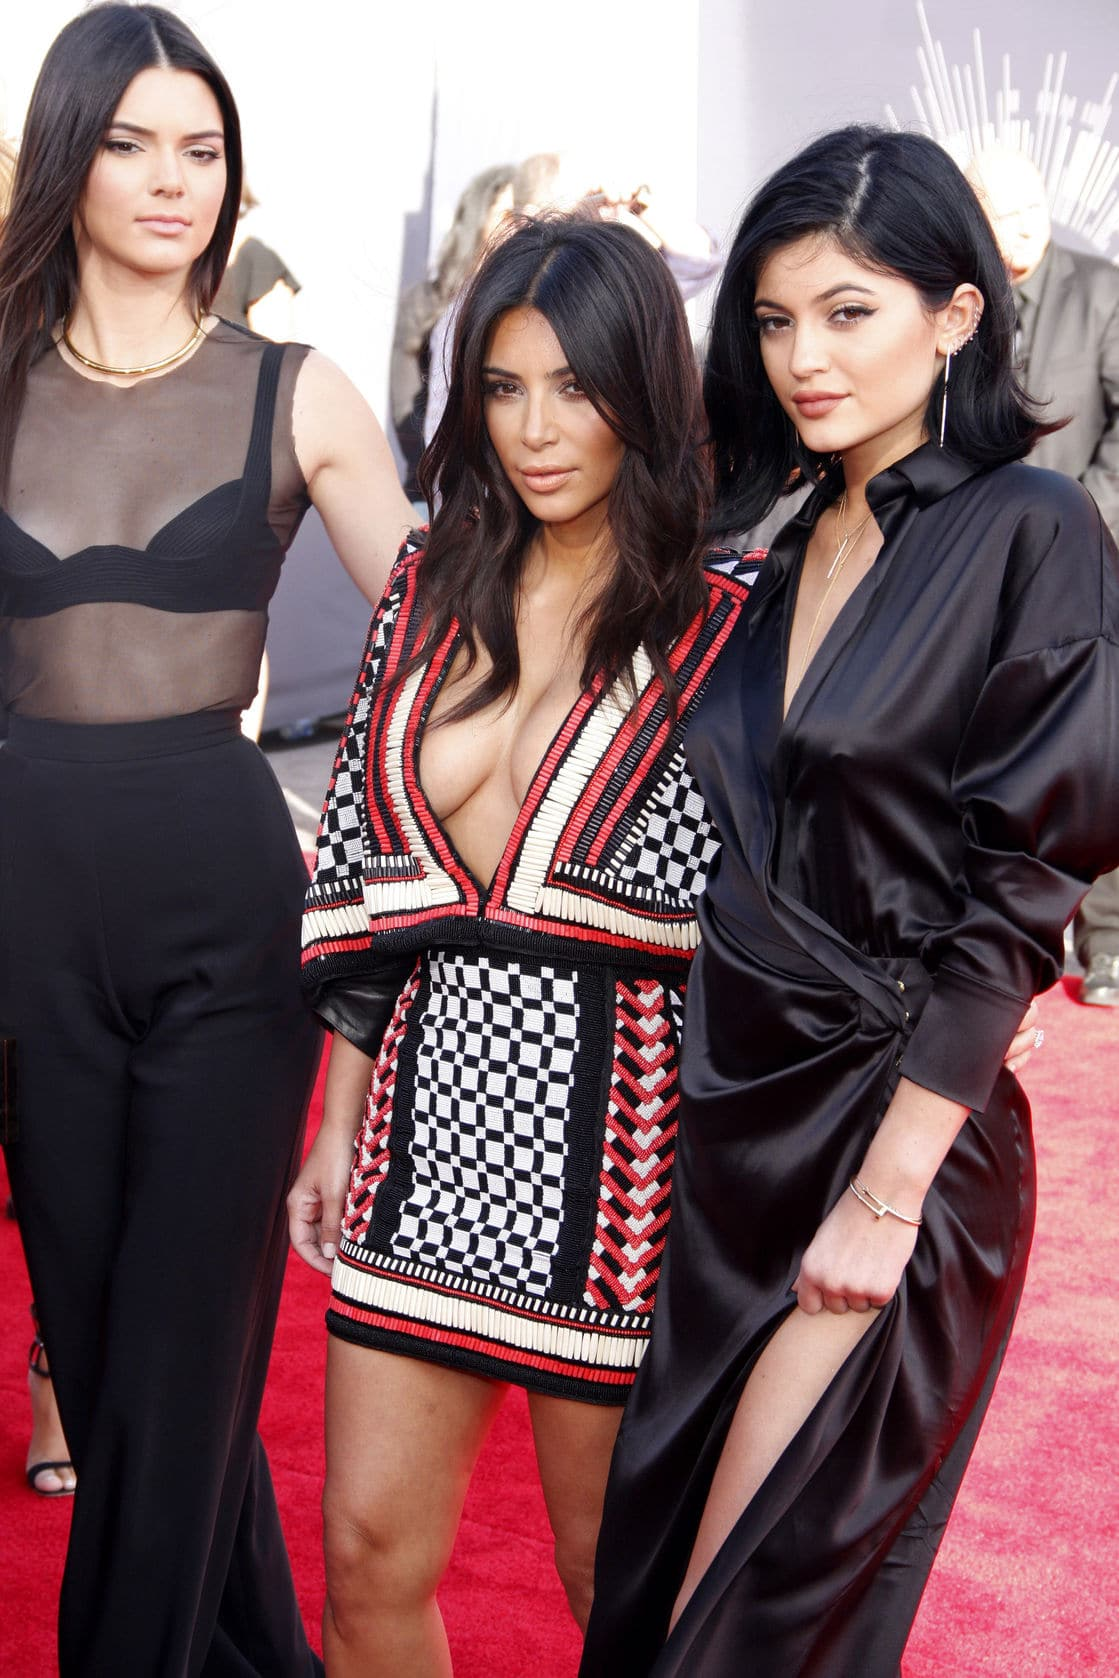 Keeping Up with Social Media: How to be Number One Like a Kardashian/Jenner